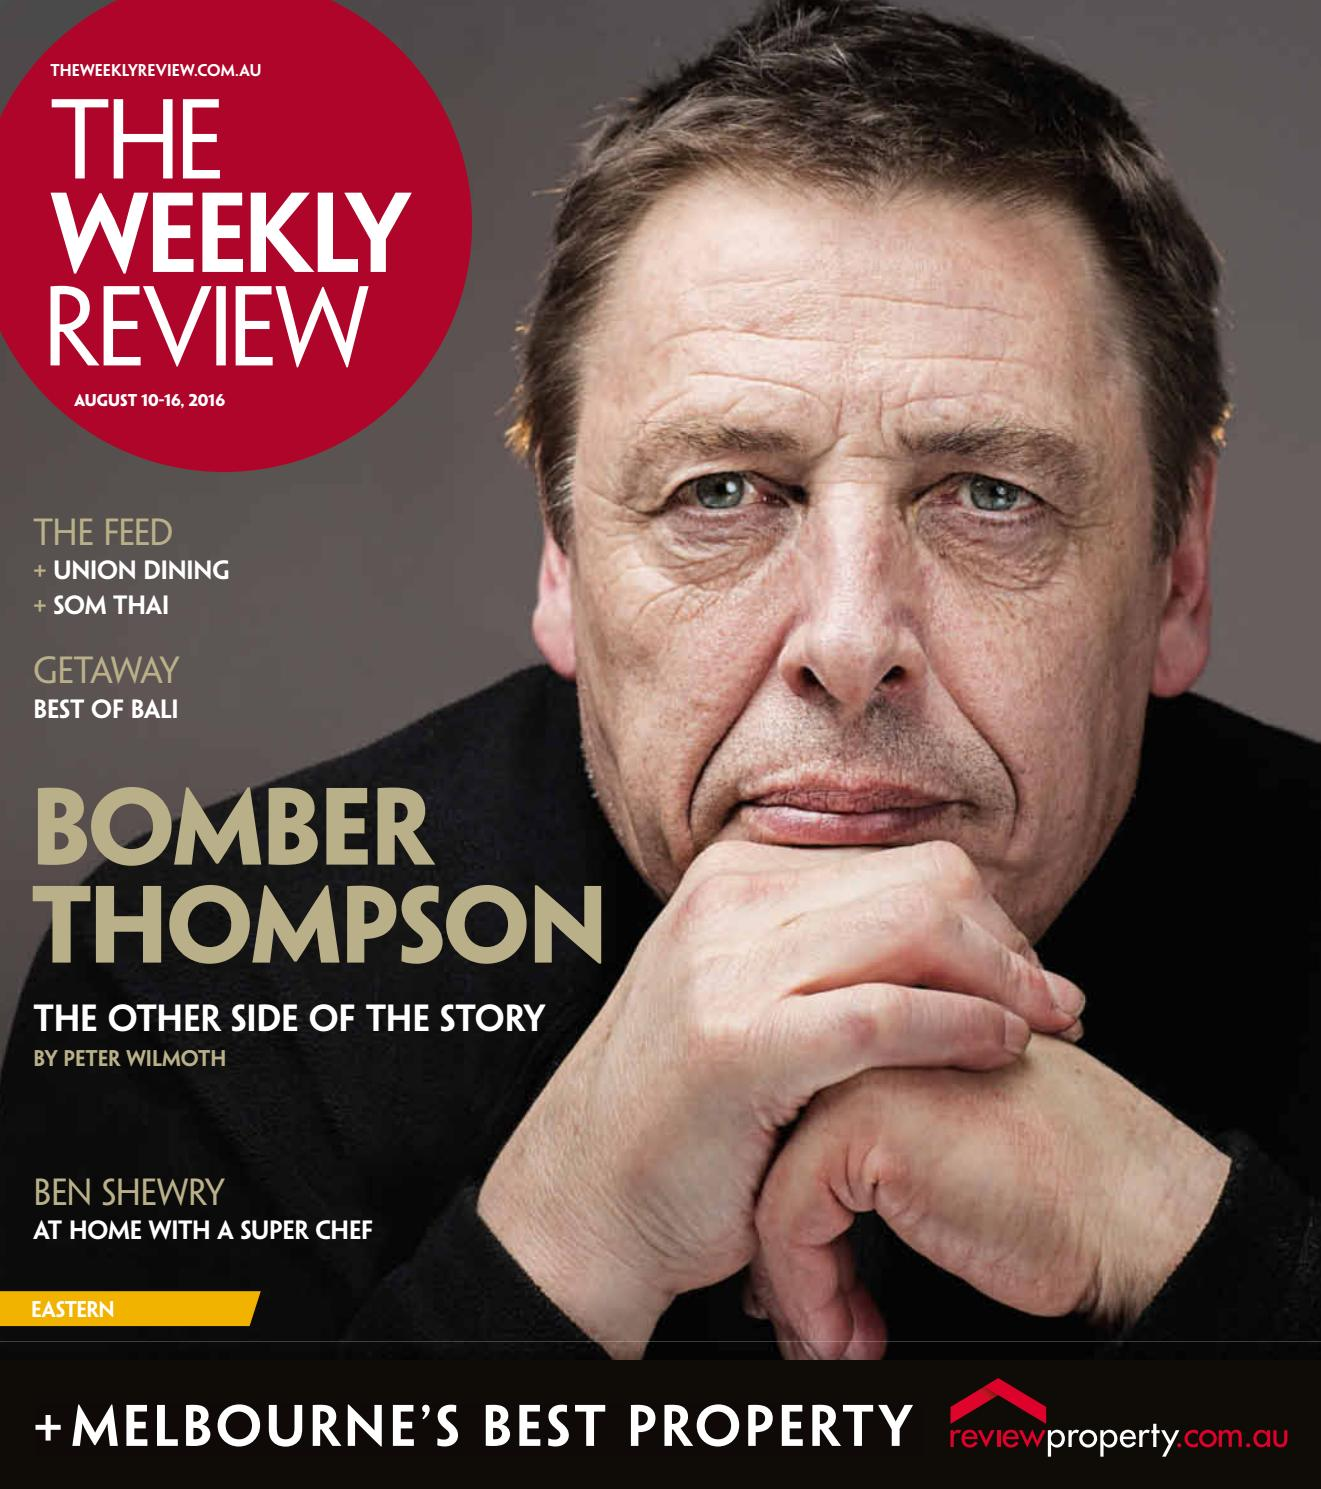 8cfa950a1d4e The Weekly Review Eastern by The Weekly Review - issuu